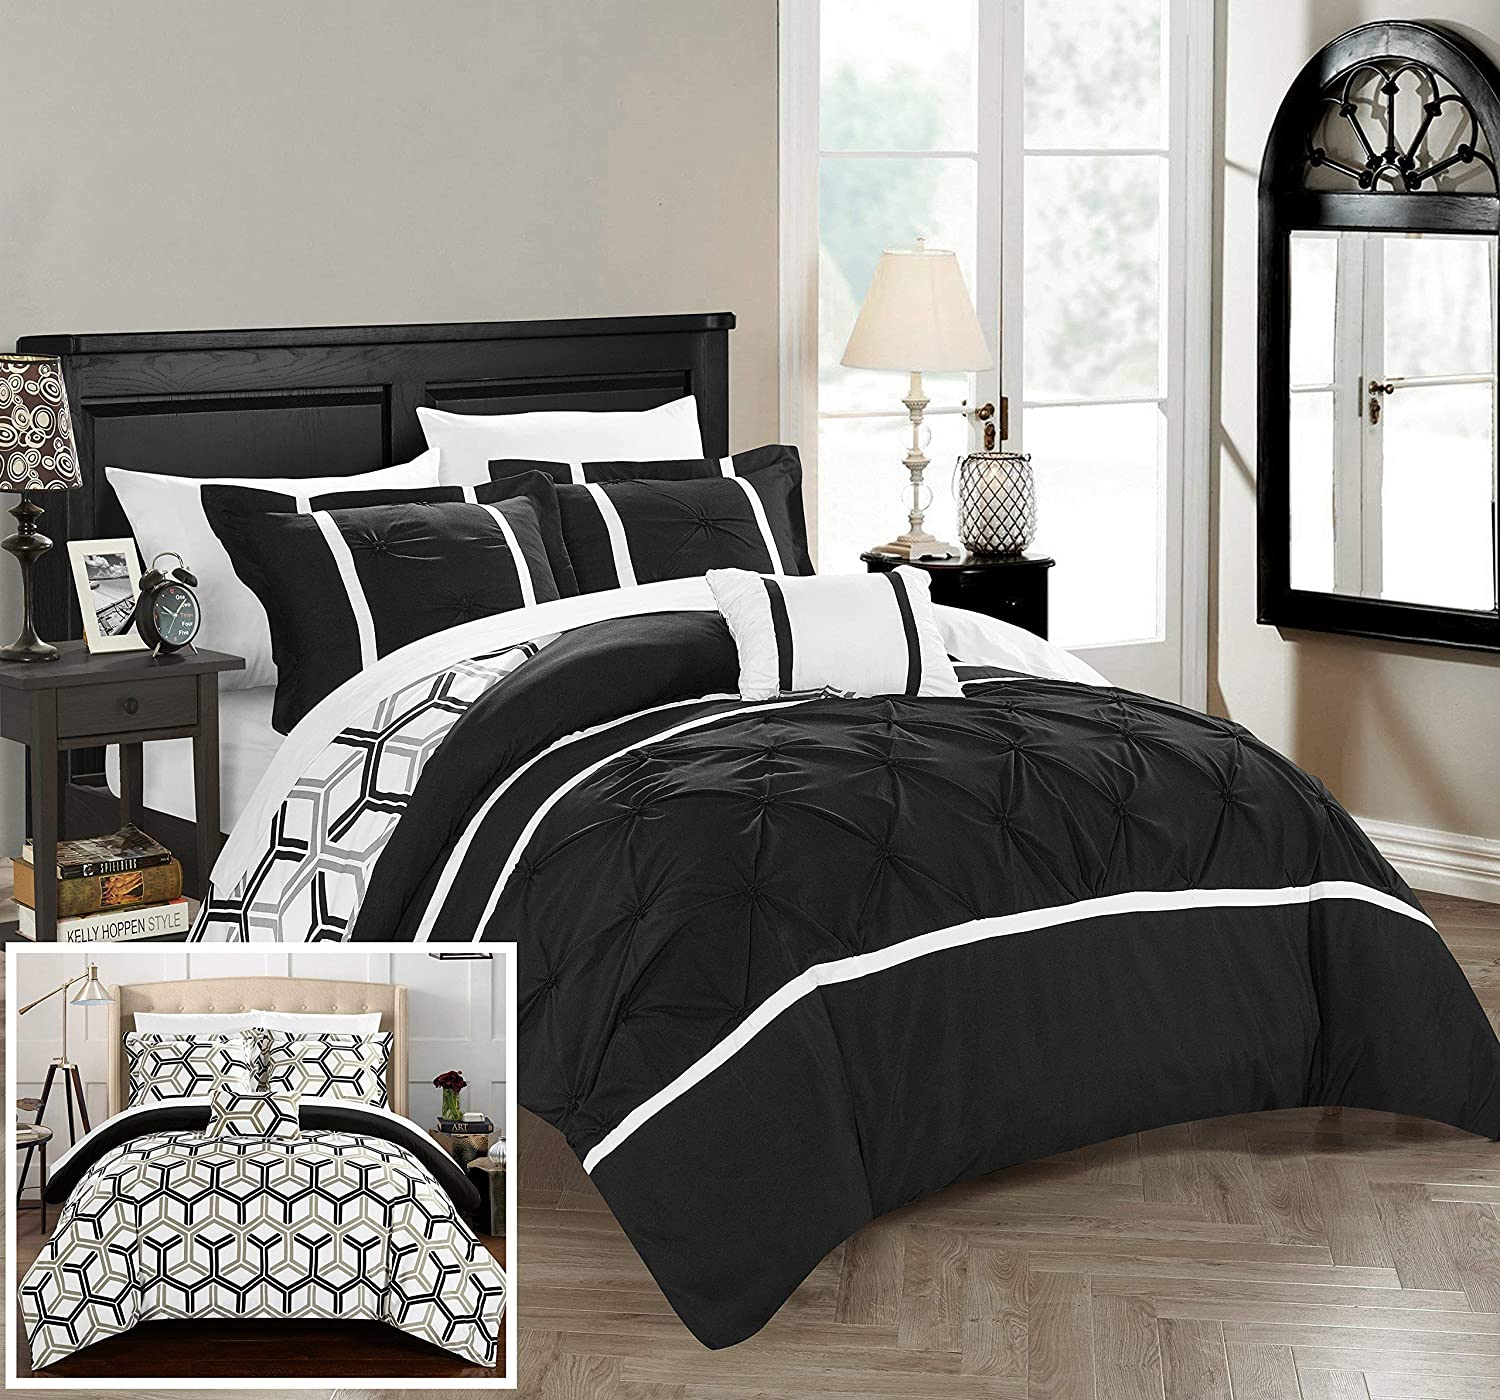 Chic Home Marcia 4 Piece Reversible Comforter Set Bedding with Decorative Pillows Shams King Black